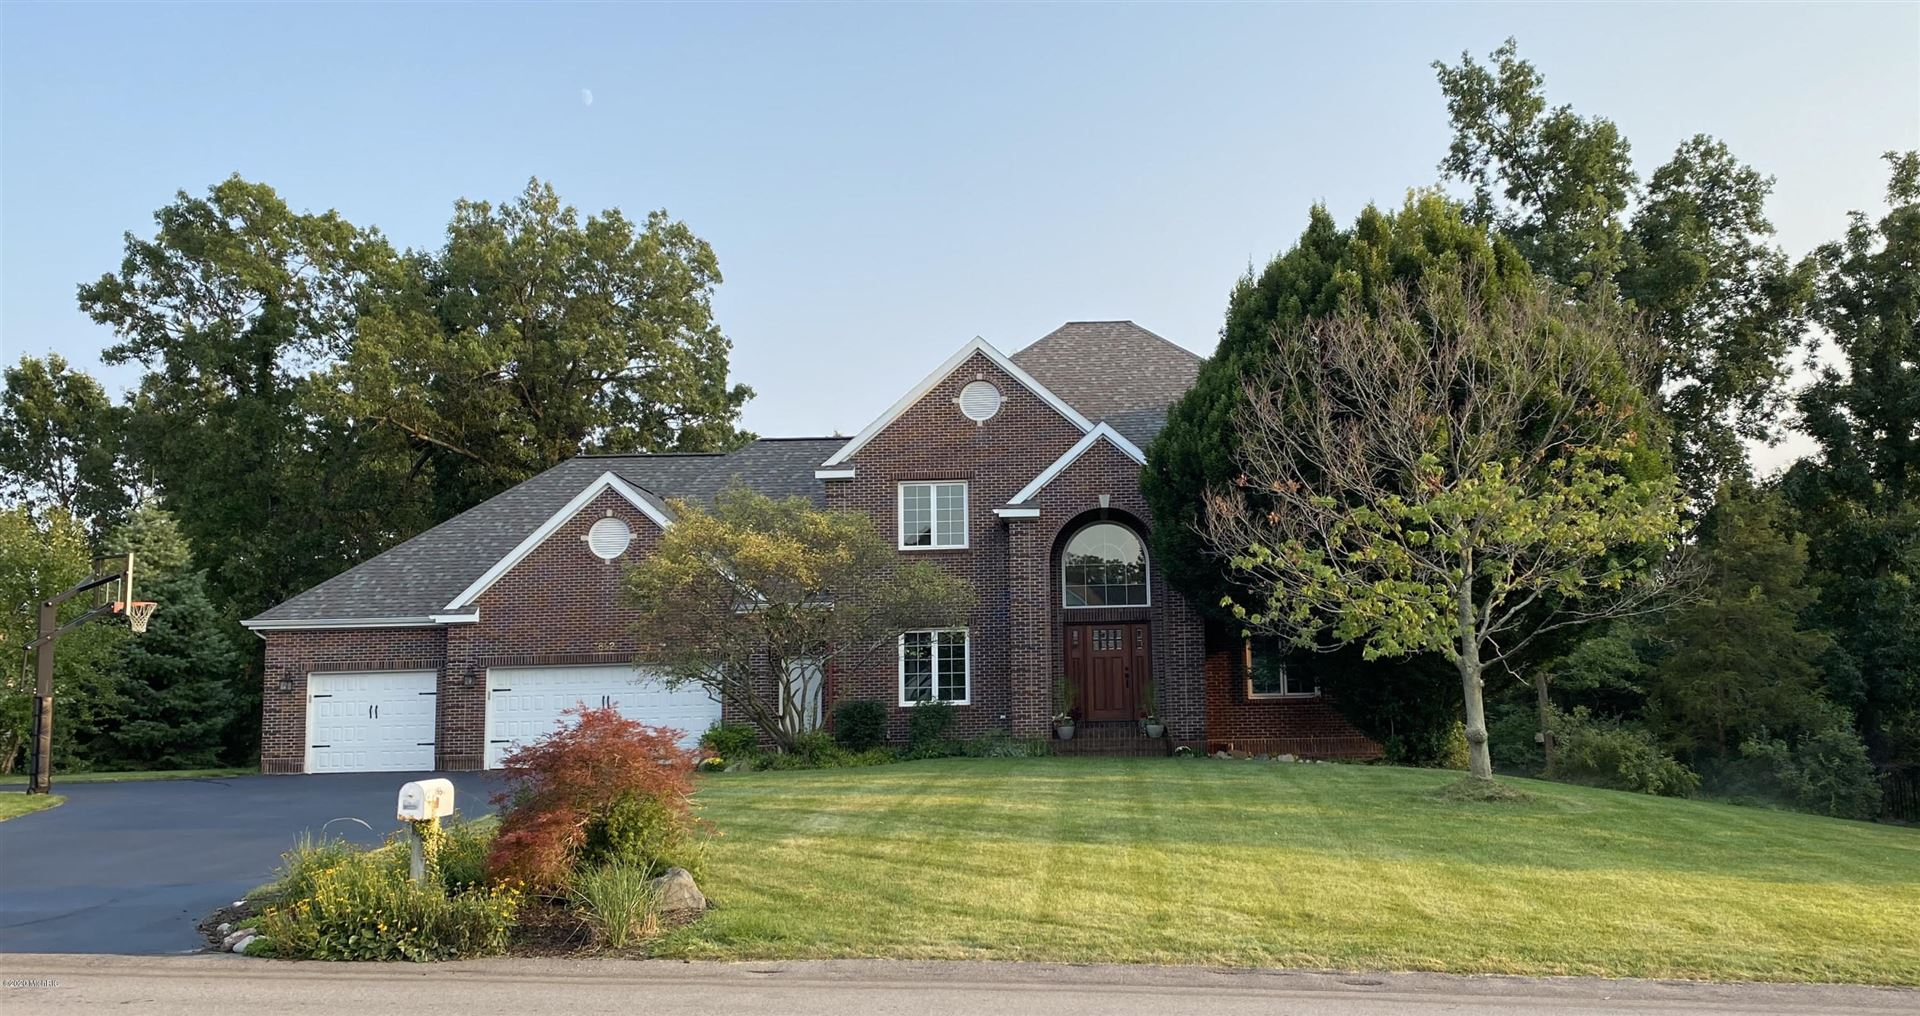 7852 Ashwood Drive SE, Ada, MI 49301 - MLS#: 20036902